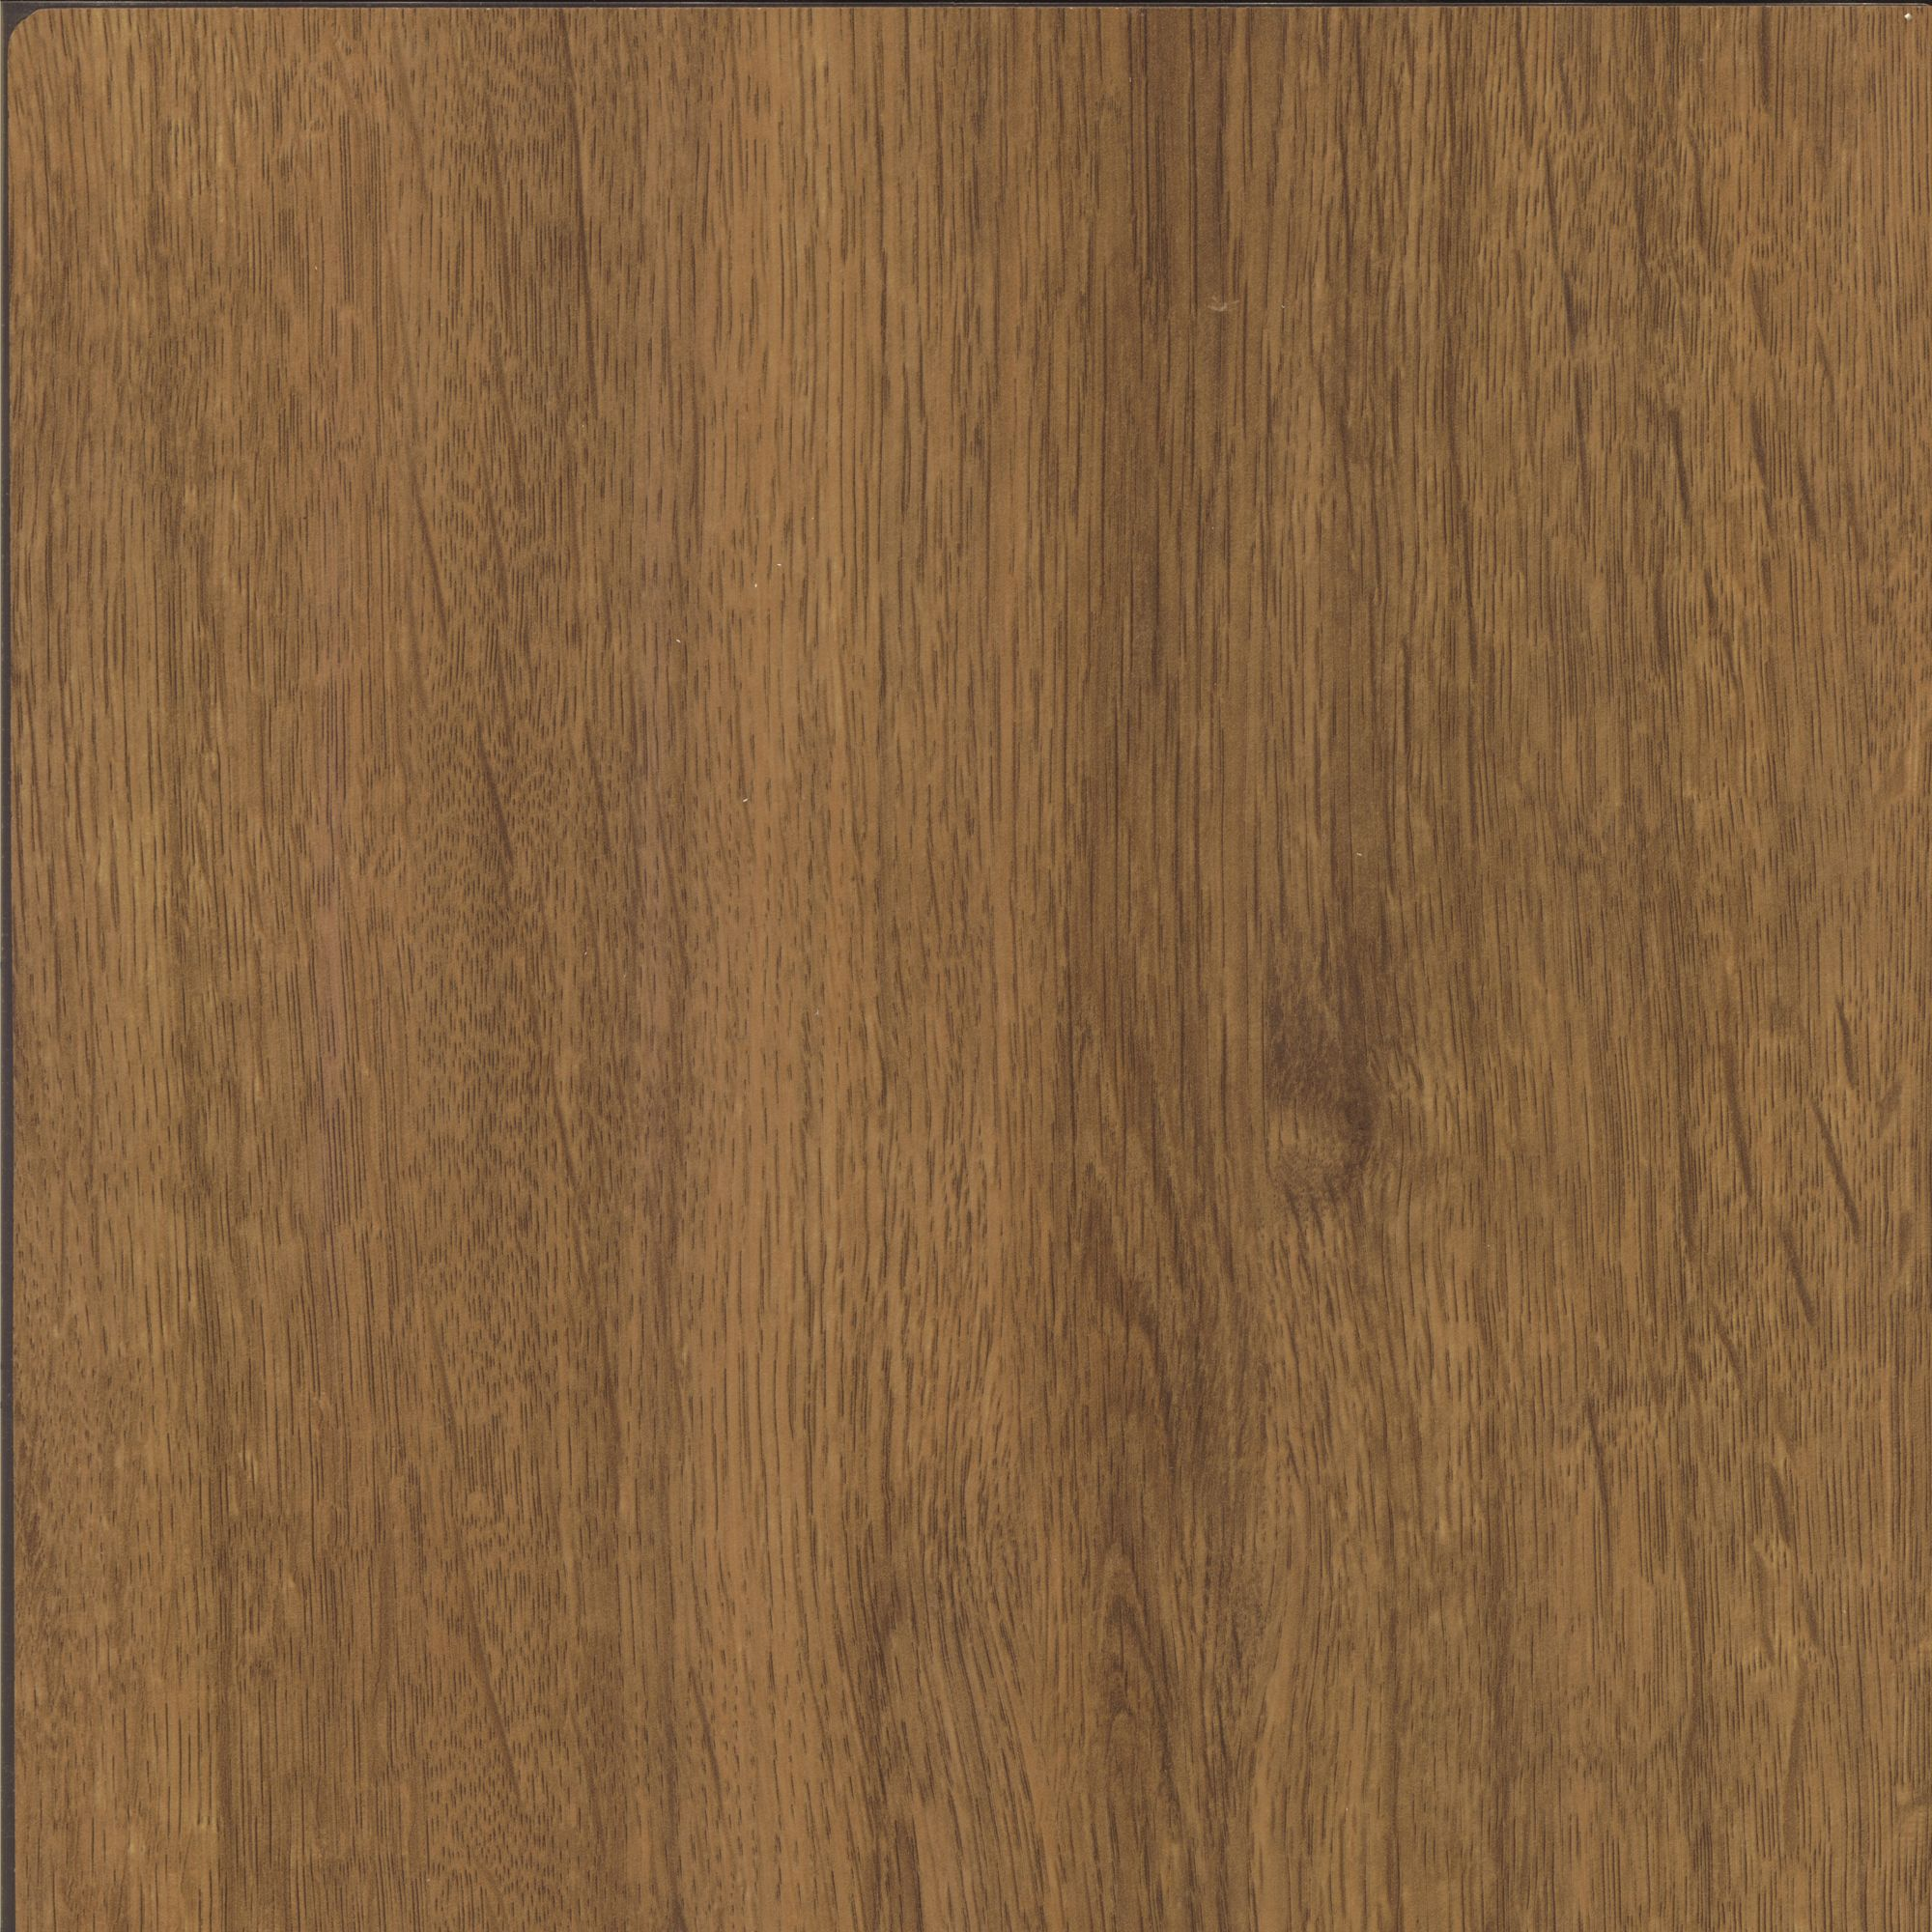 Concertino Natural Kolberg Oak Effect Laminate Flooring 1.48 m Pack |  Departments | DIY at B&Q